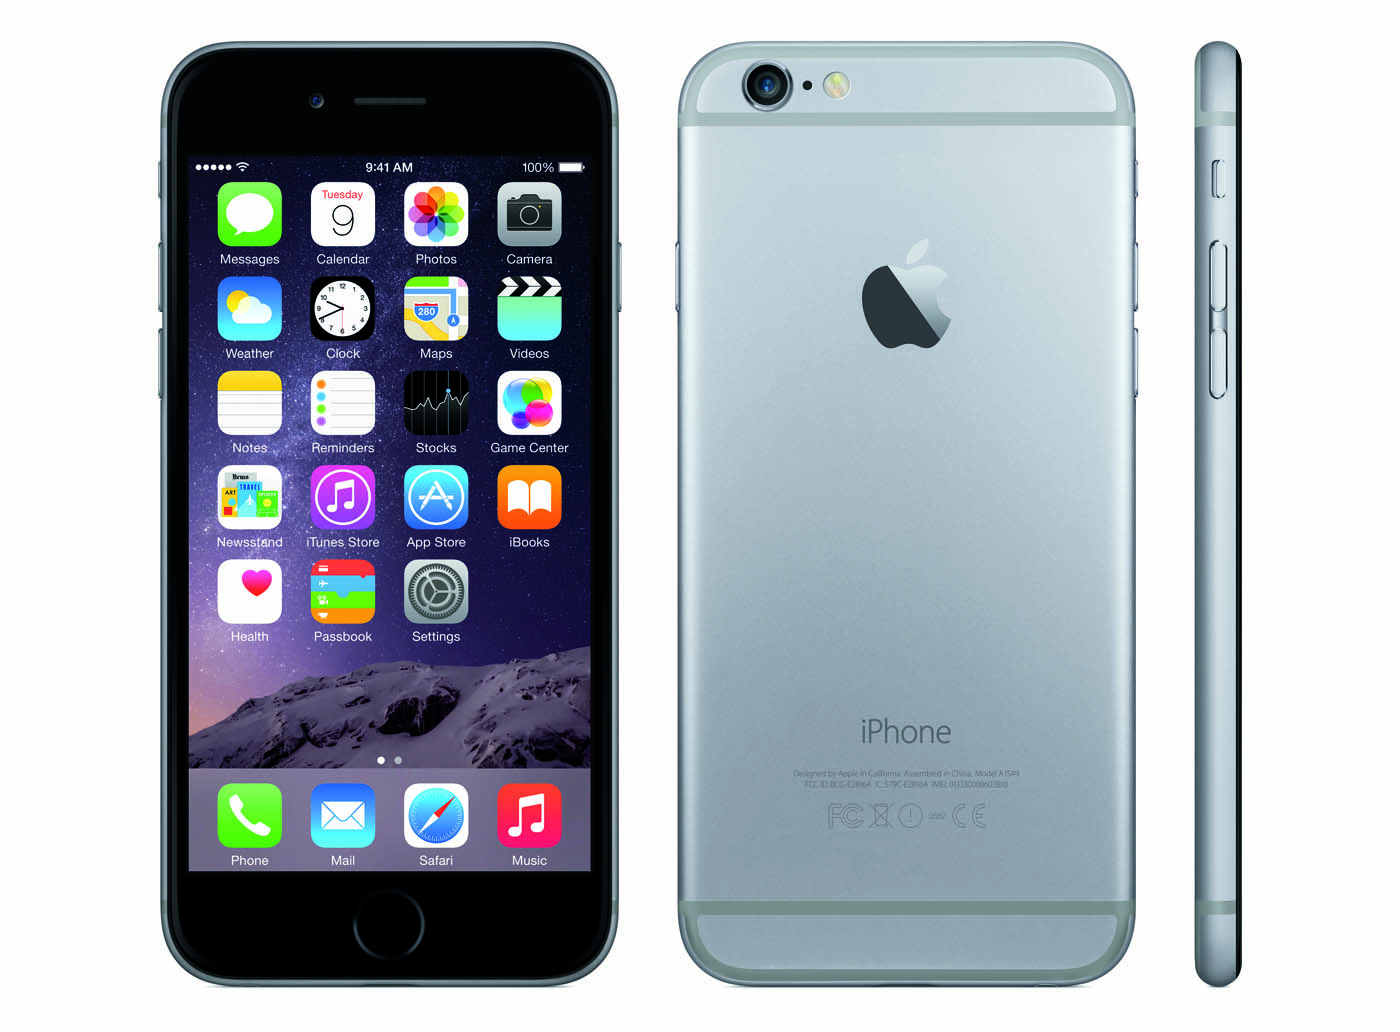 Neues Apple iPhone 6s und iPhone 6s Plus ab Freitag im Handel